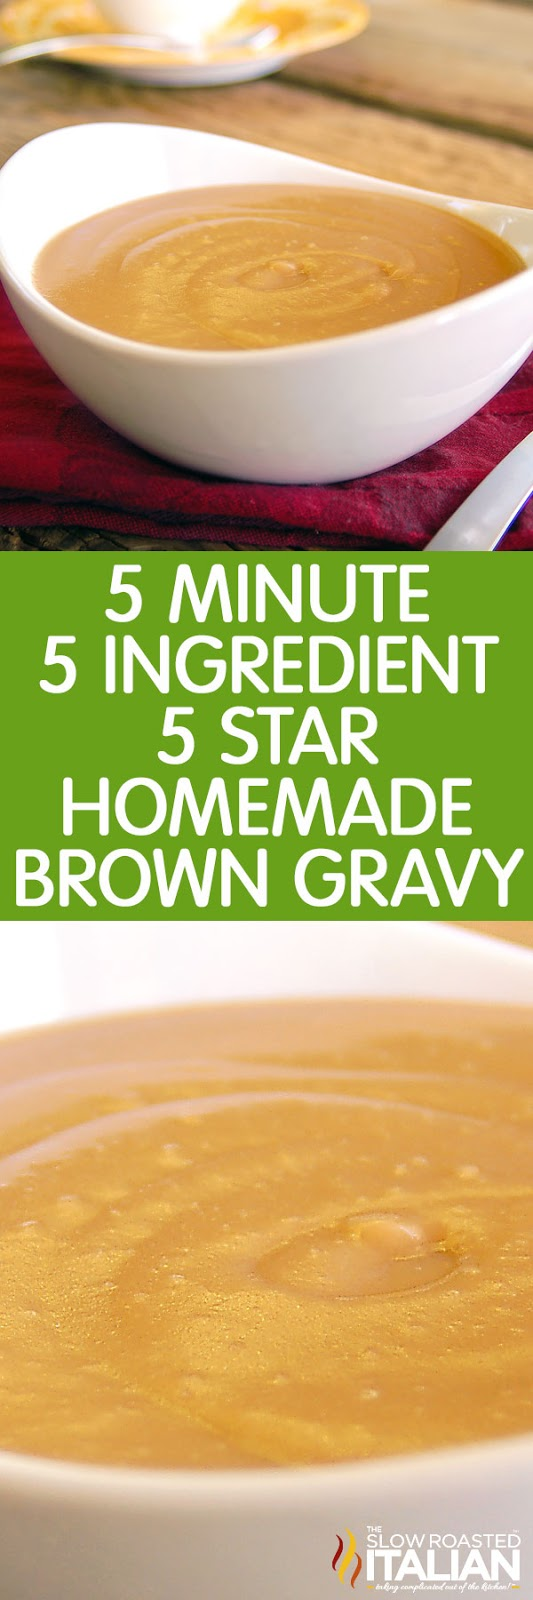 Brown Gravy Recipe So Easy Video